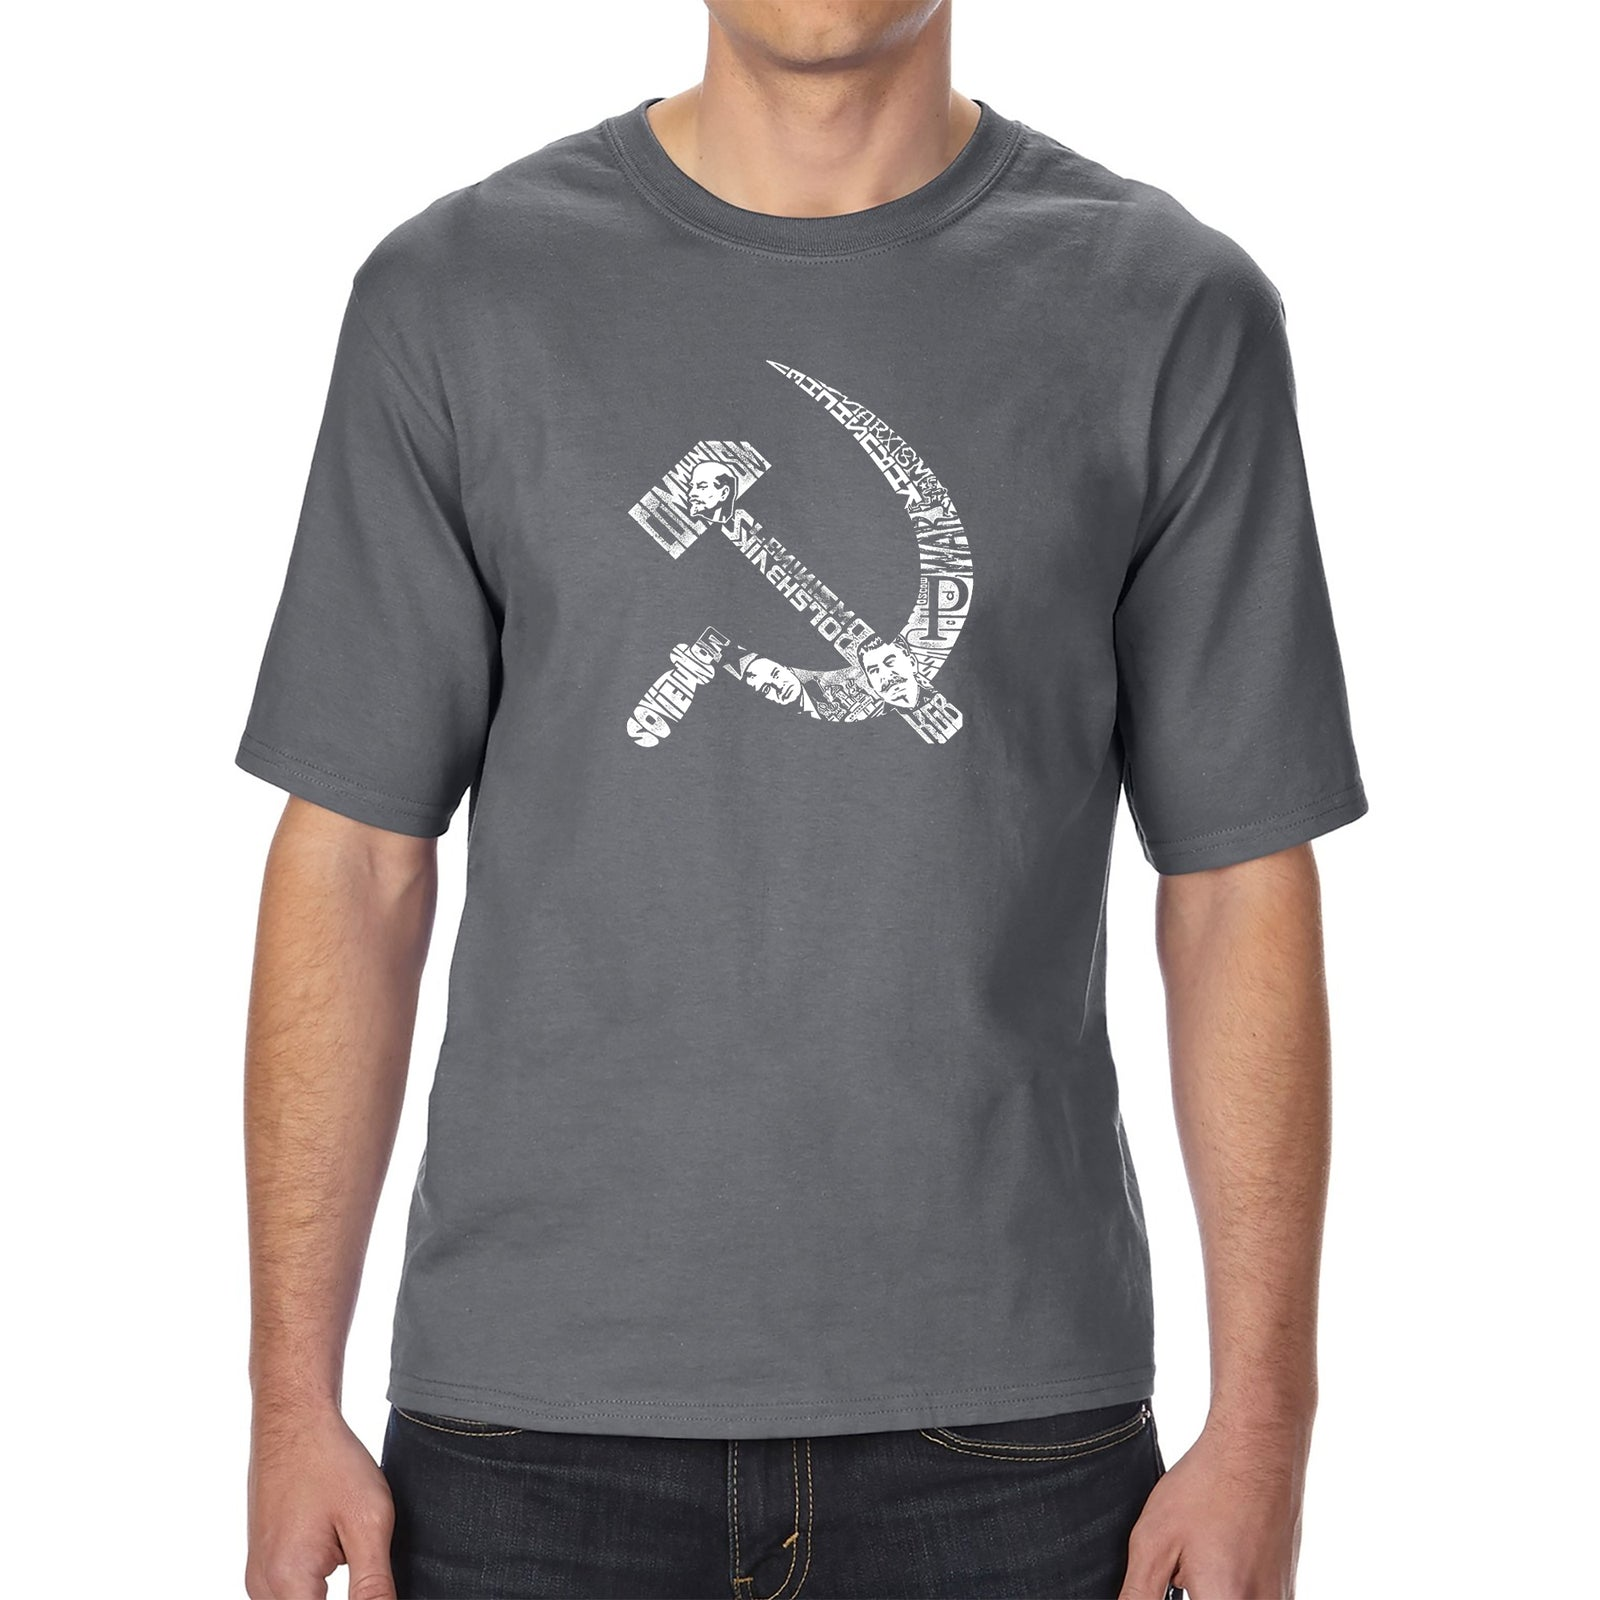 Men's Tall and Long Word Art T-shirt - SOVIET HAMMER AND SICKLE